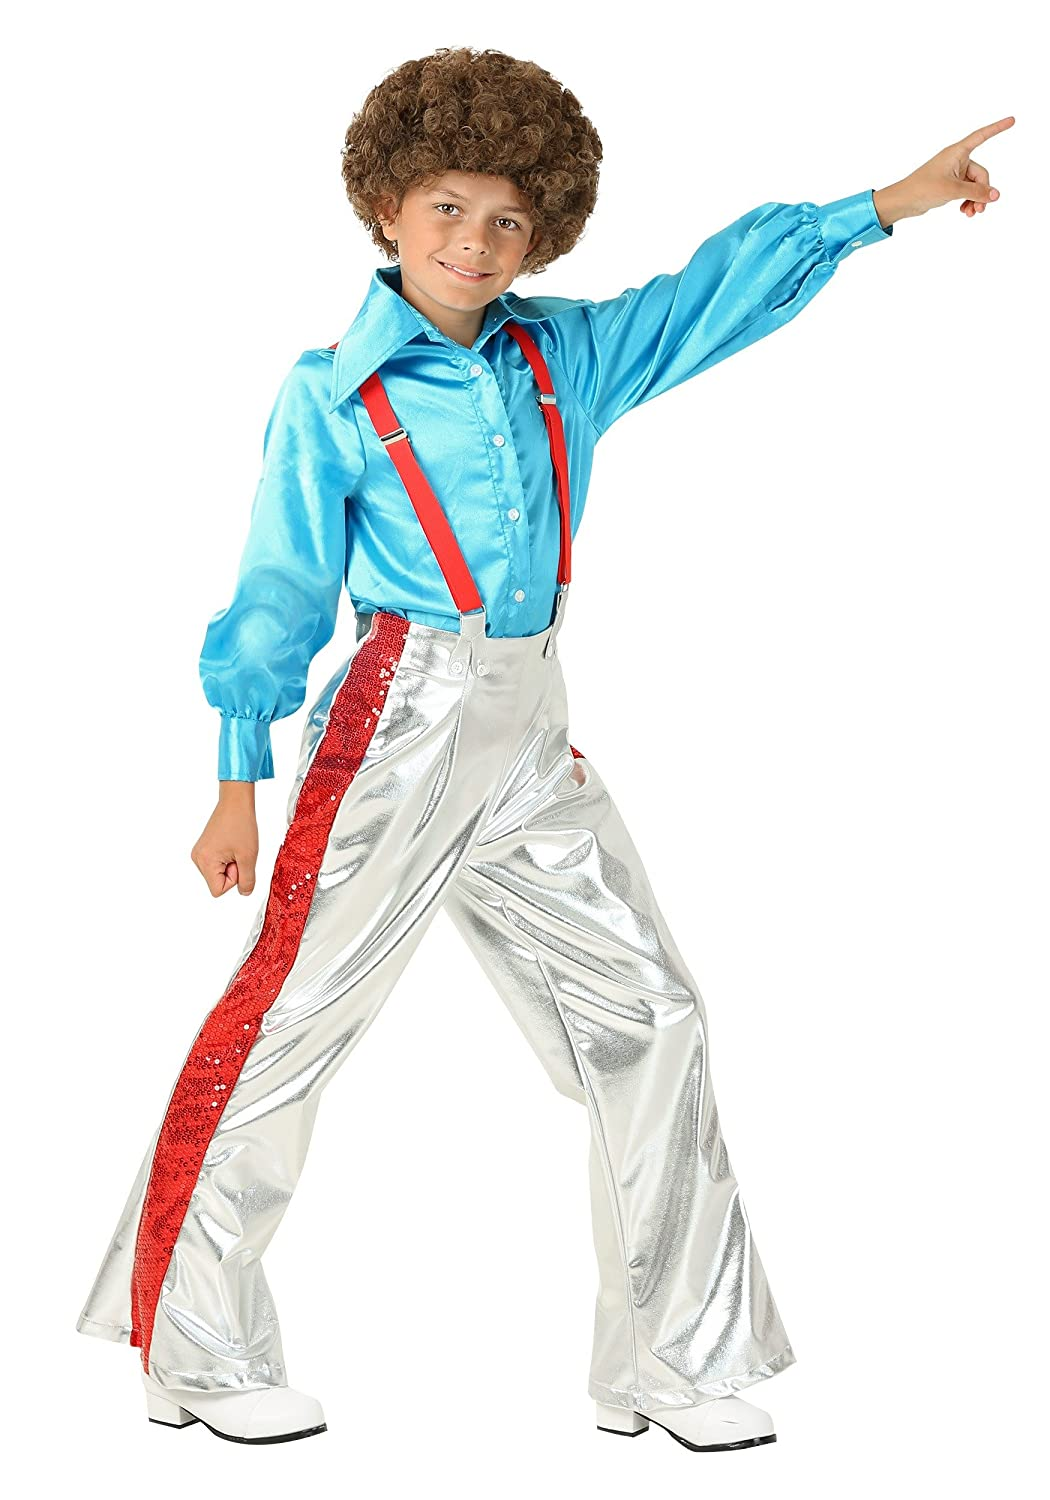 60s 70s Kids Costumes & Clothing Girls & Boys Boys Funky Disco Costume $39.99 AT vintagedancer.com